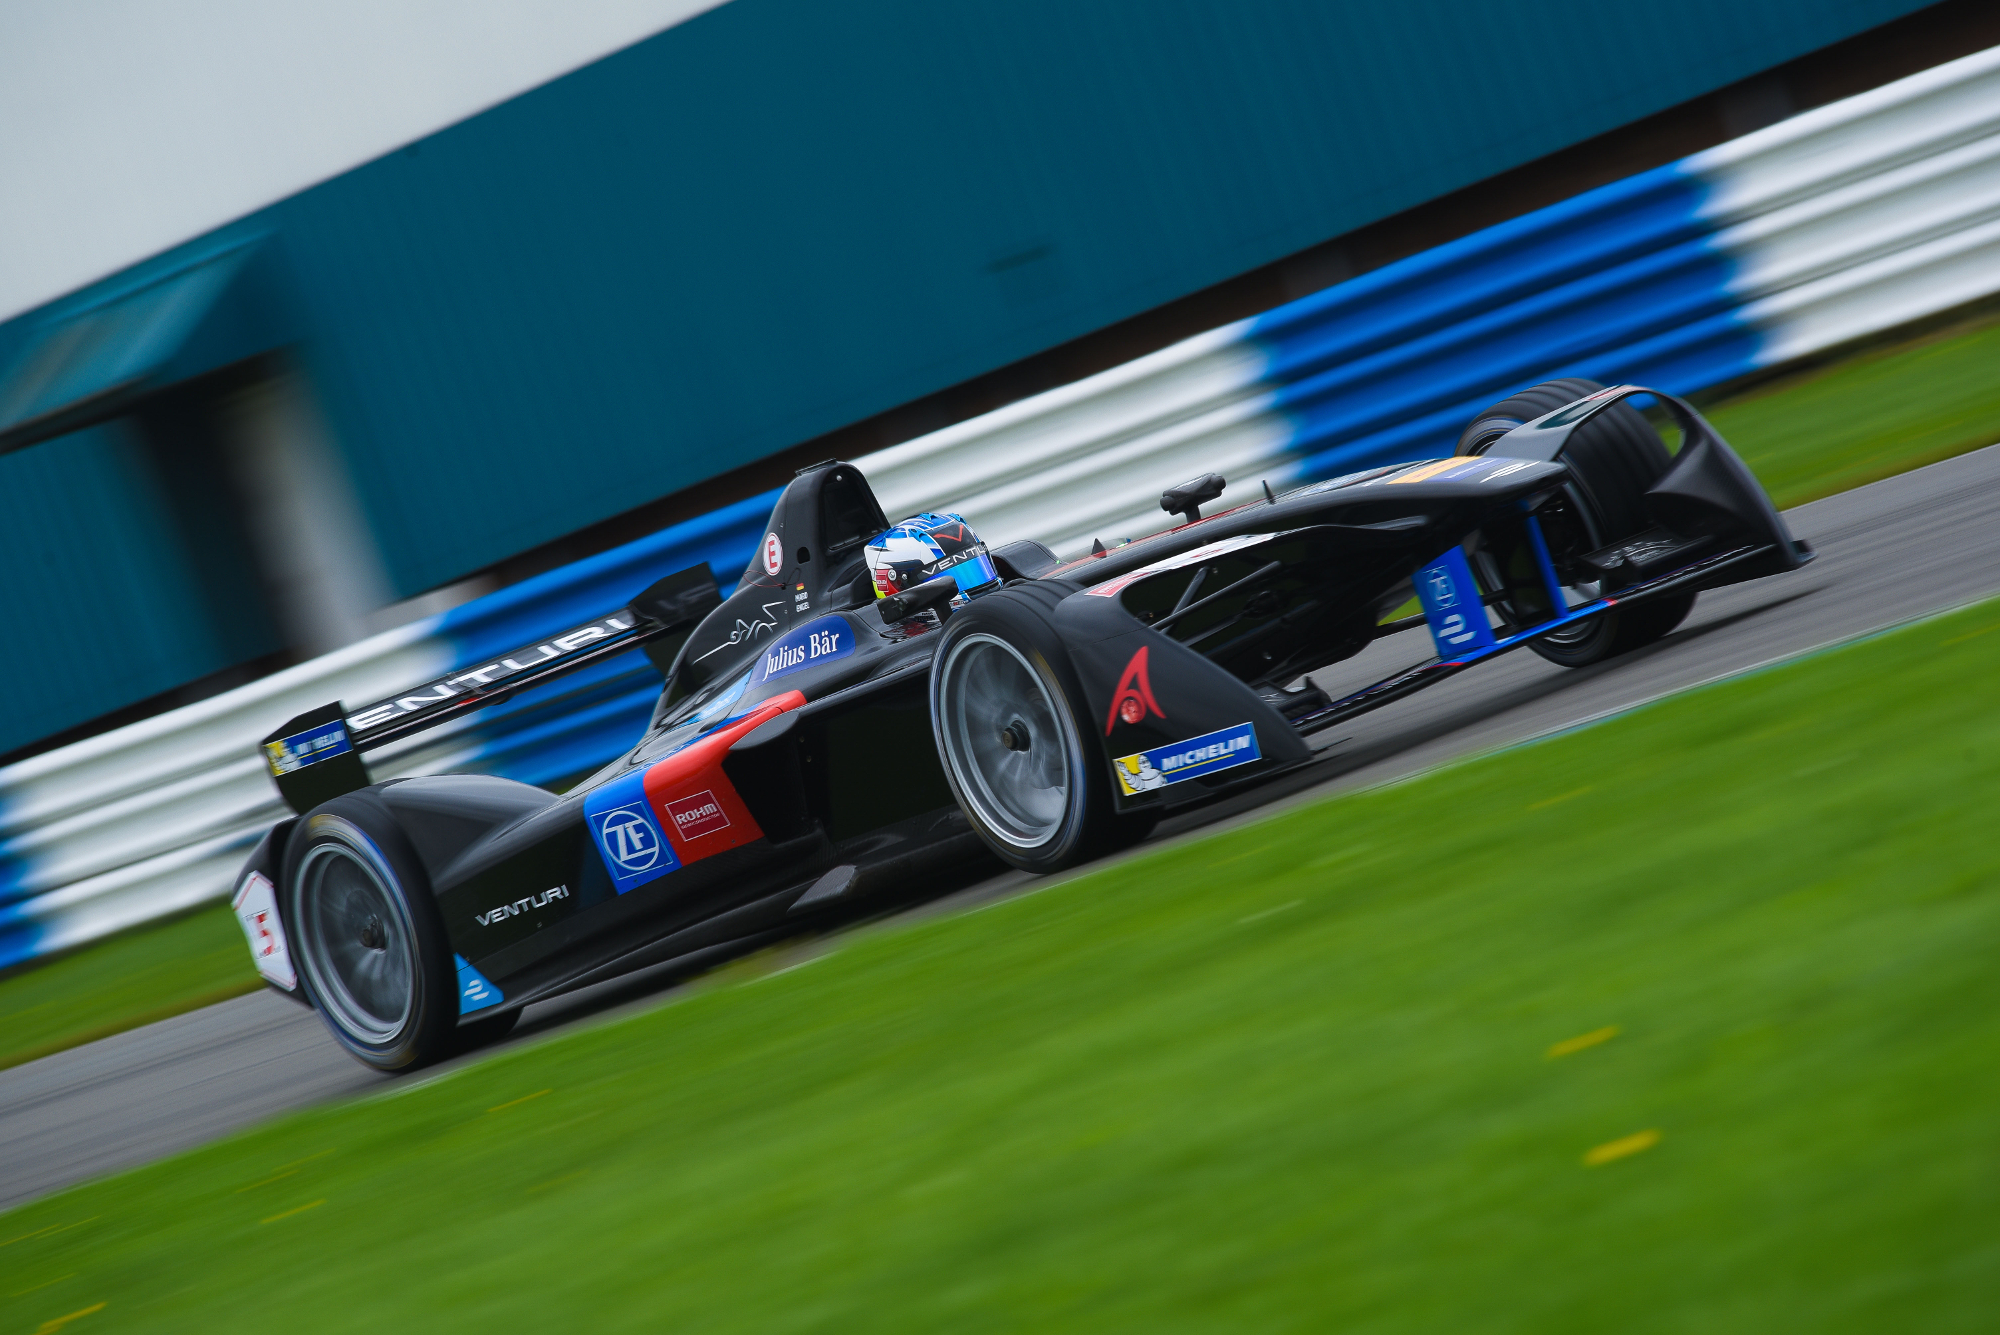 [Venturi-Rohm team at Formula E cr]